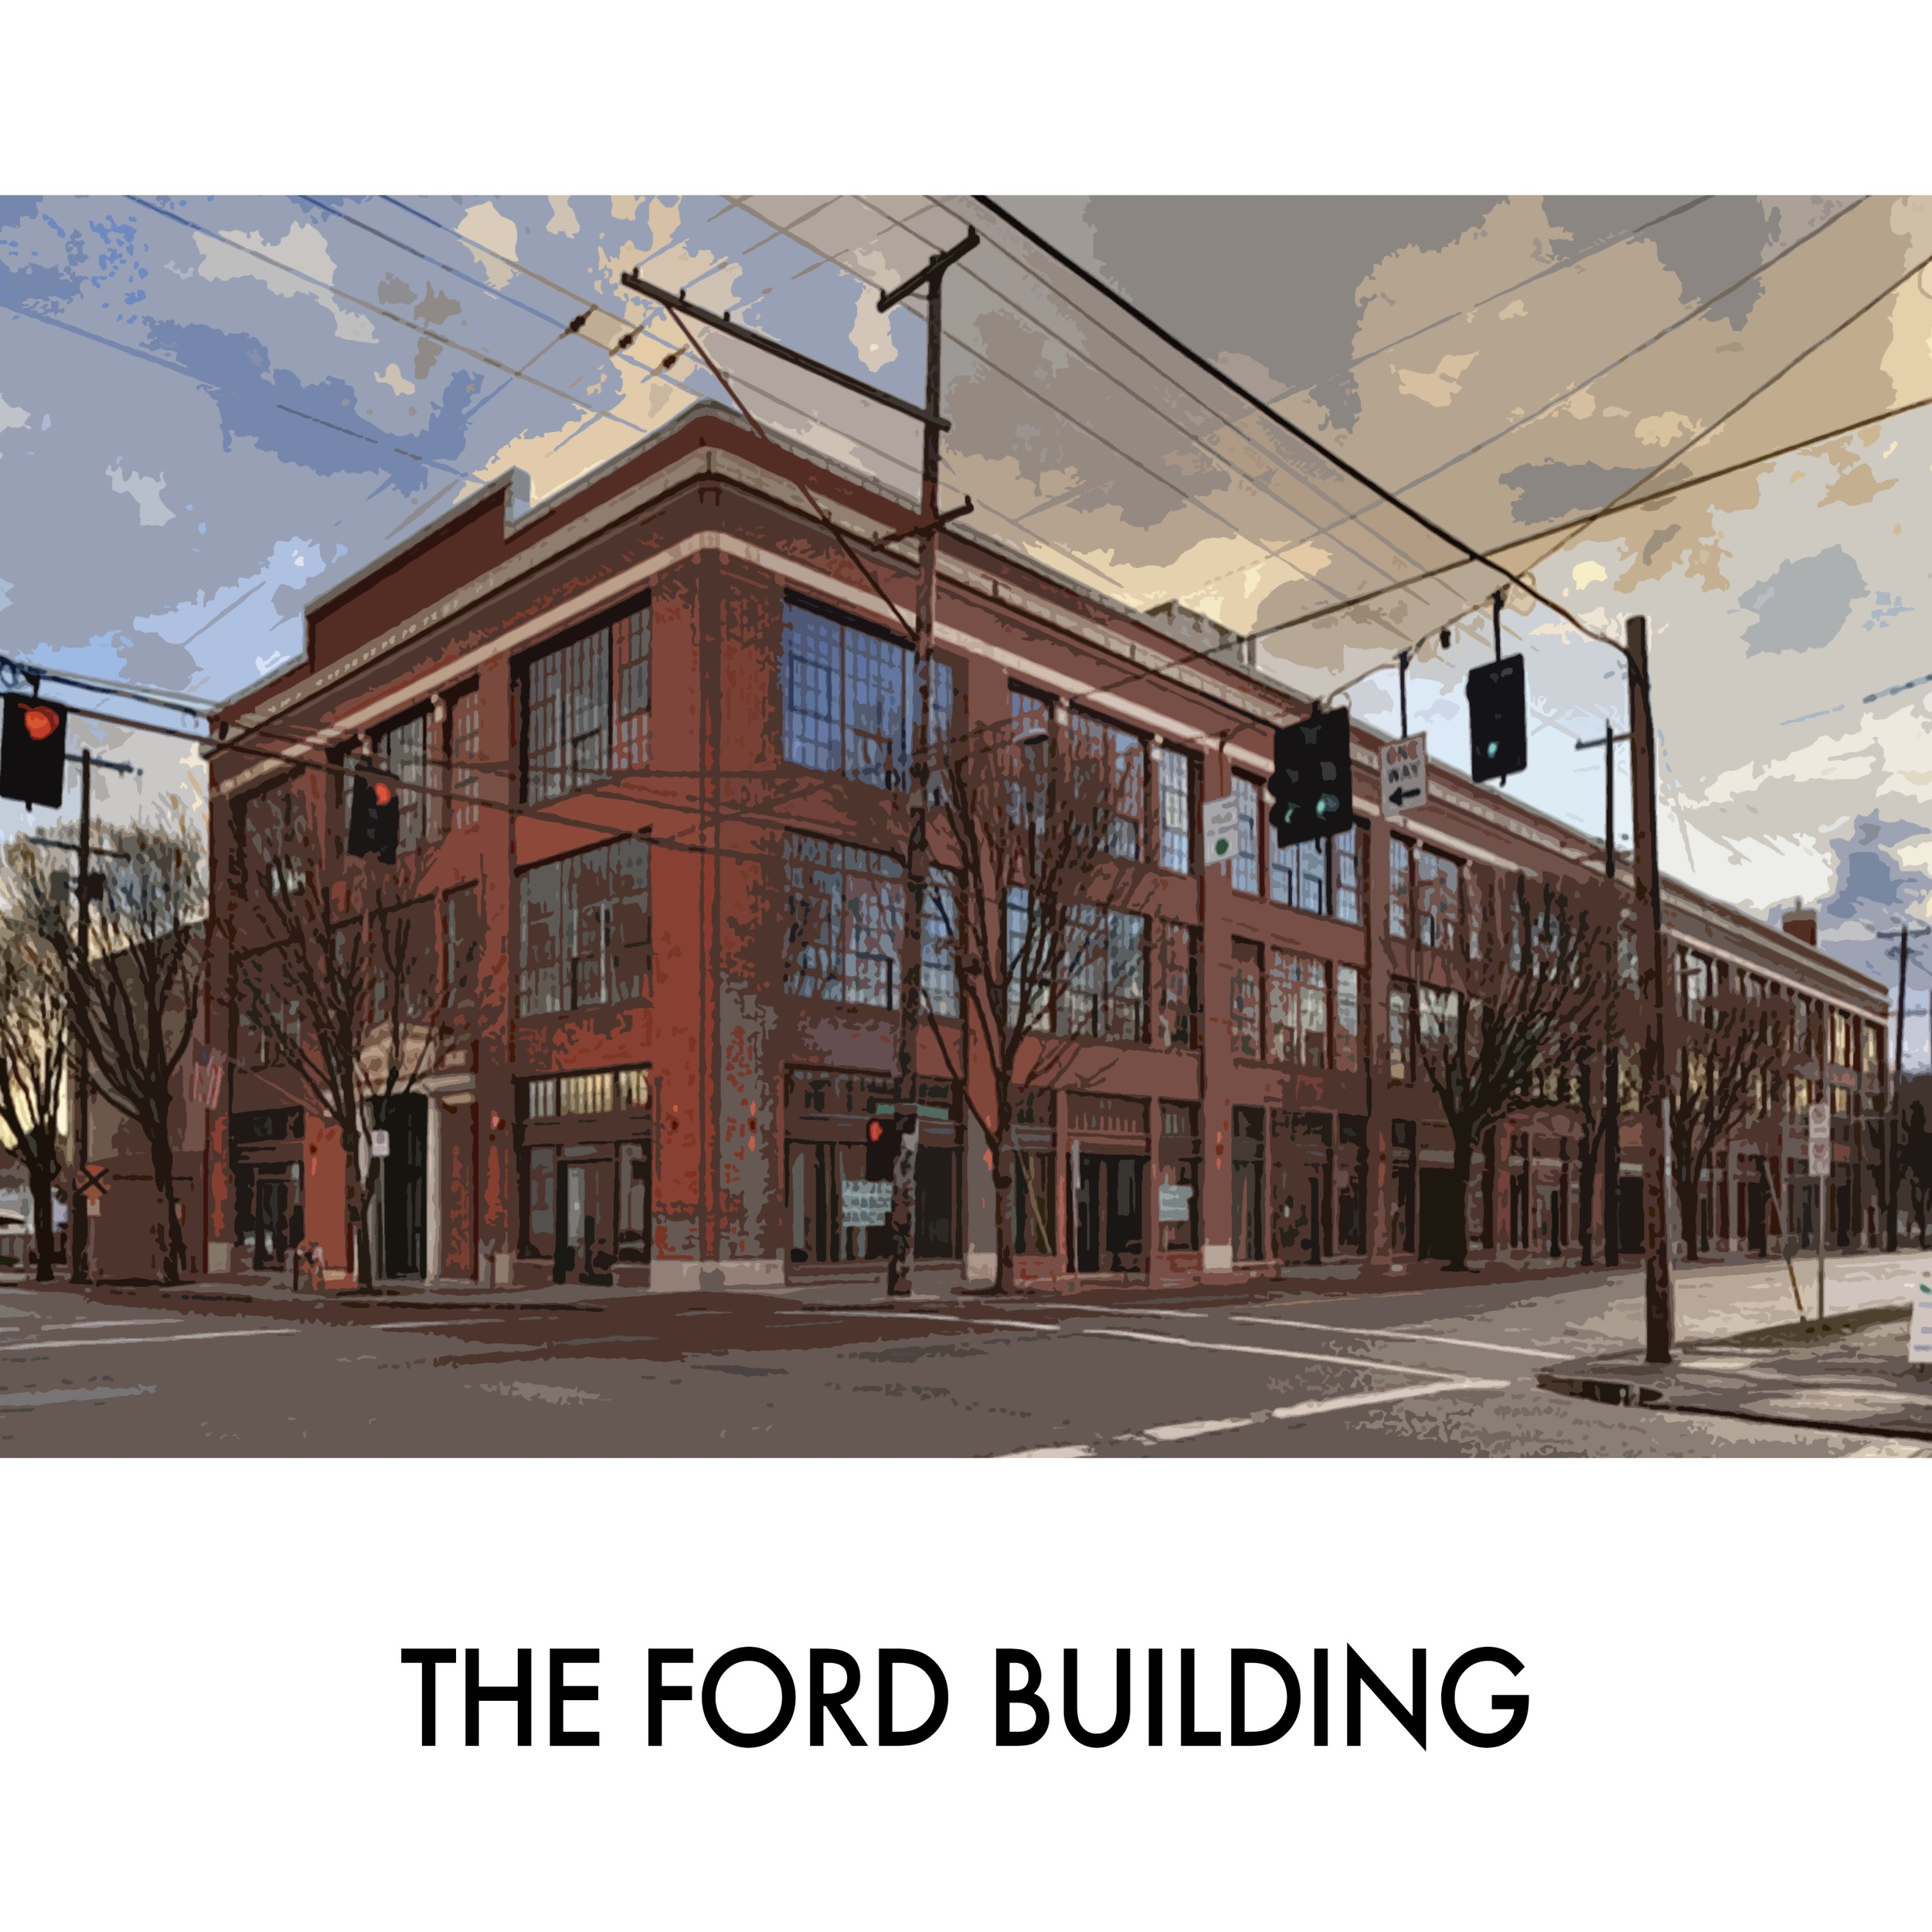 thefordbuilding_frontpage.jpg